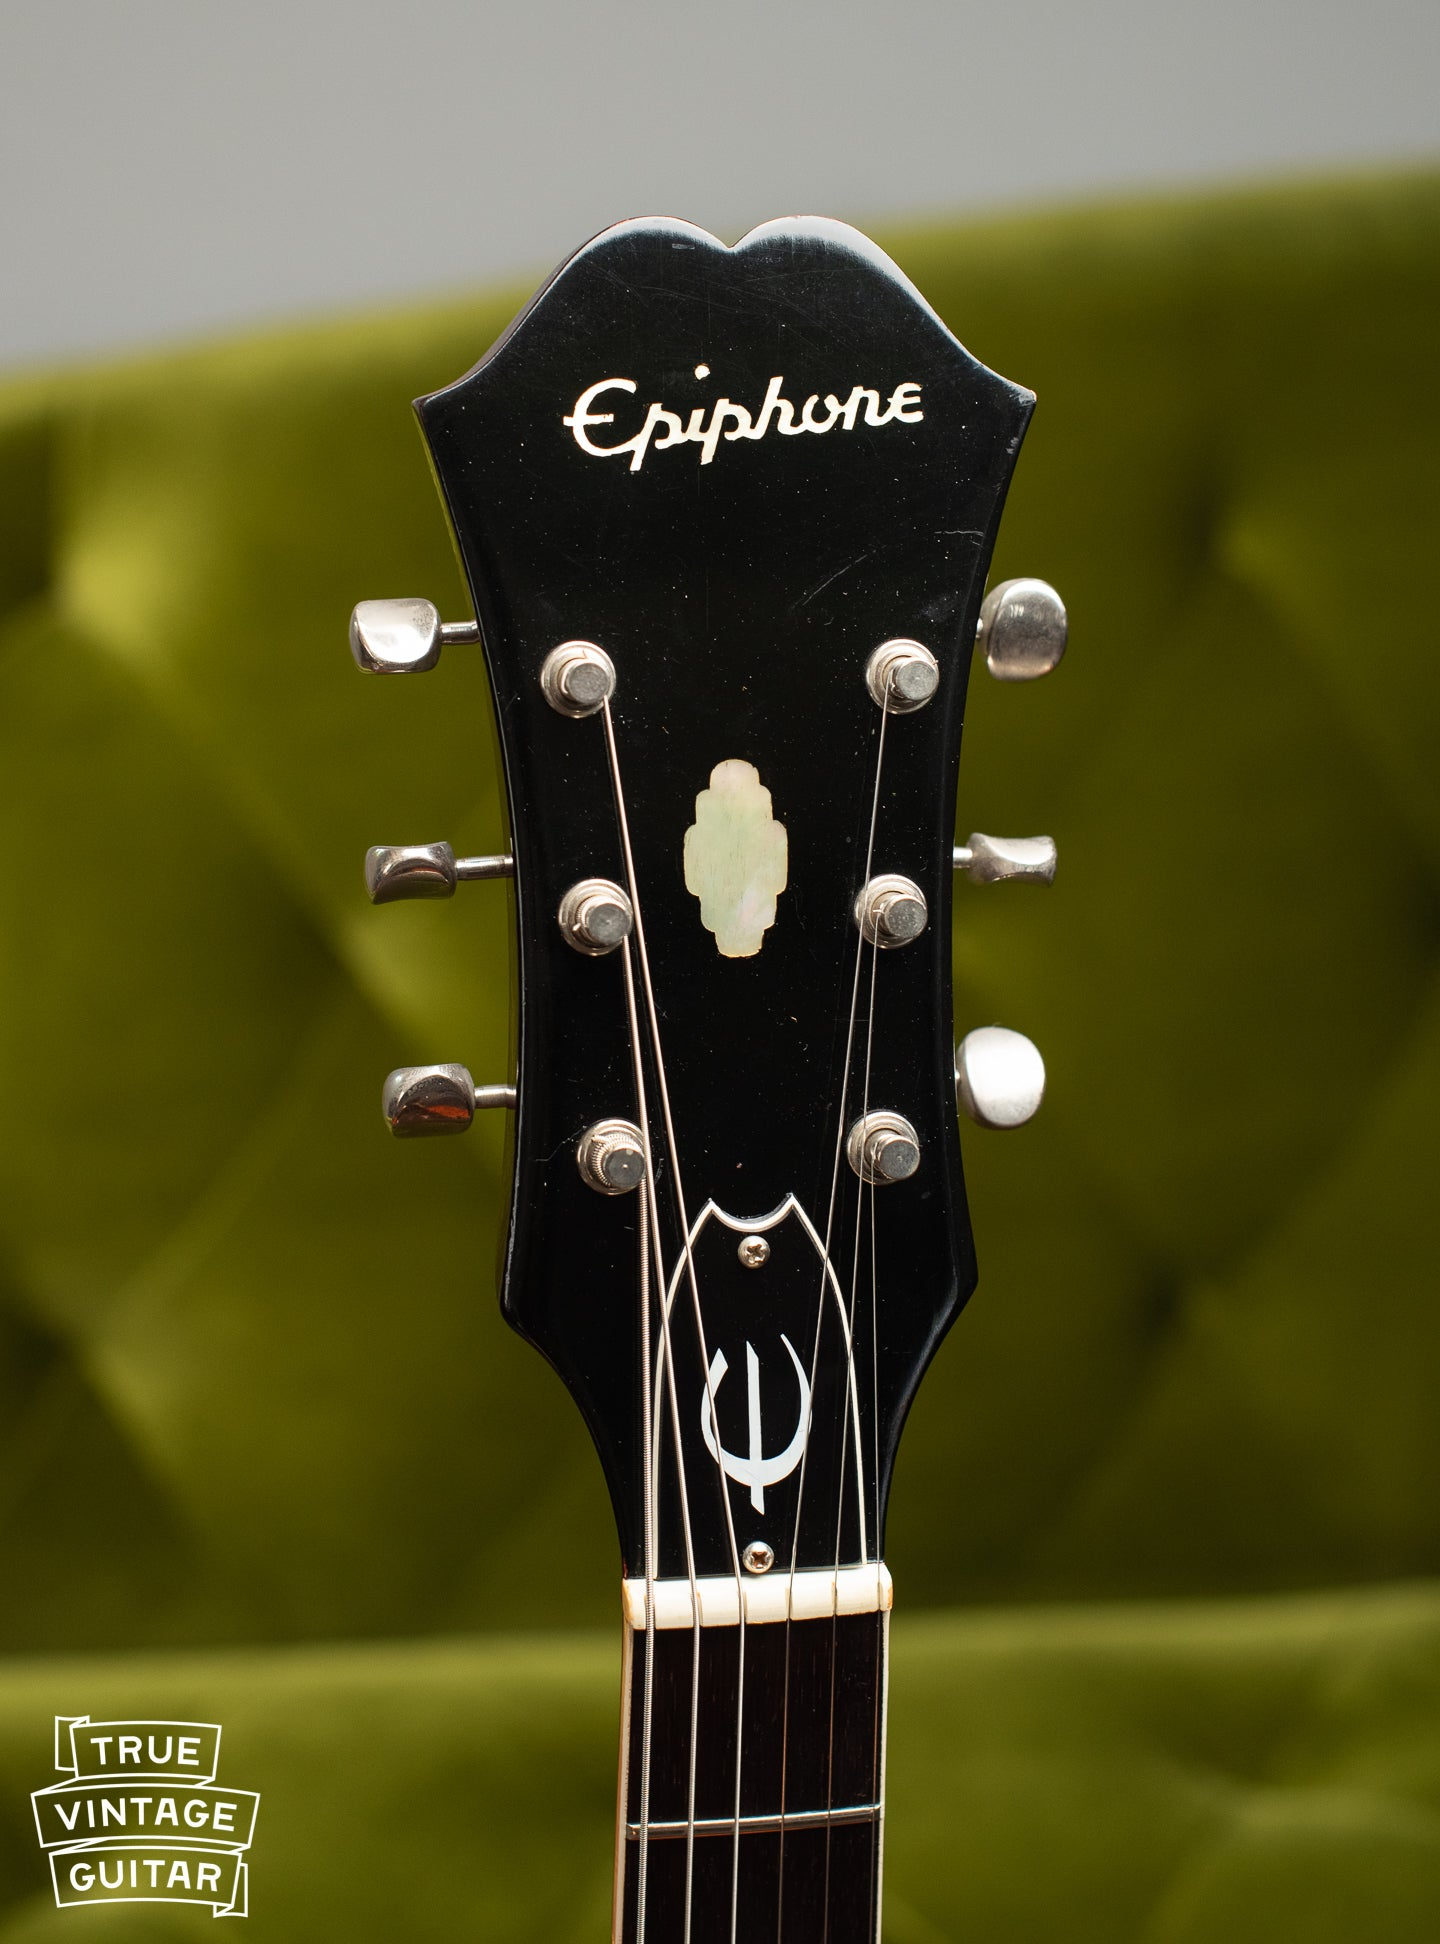 Headstock, pearl Epiphone inlay, Vintage 1967 Epiphone E360T Riviera